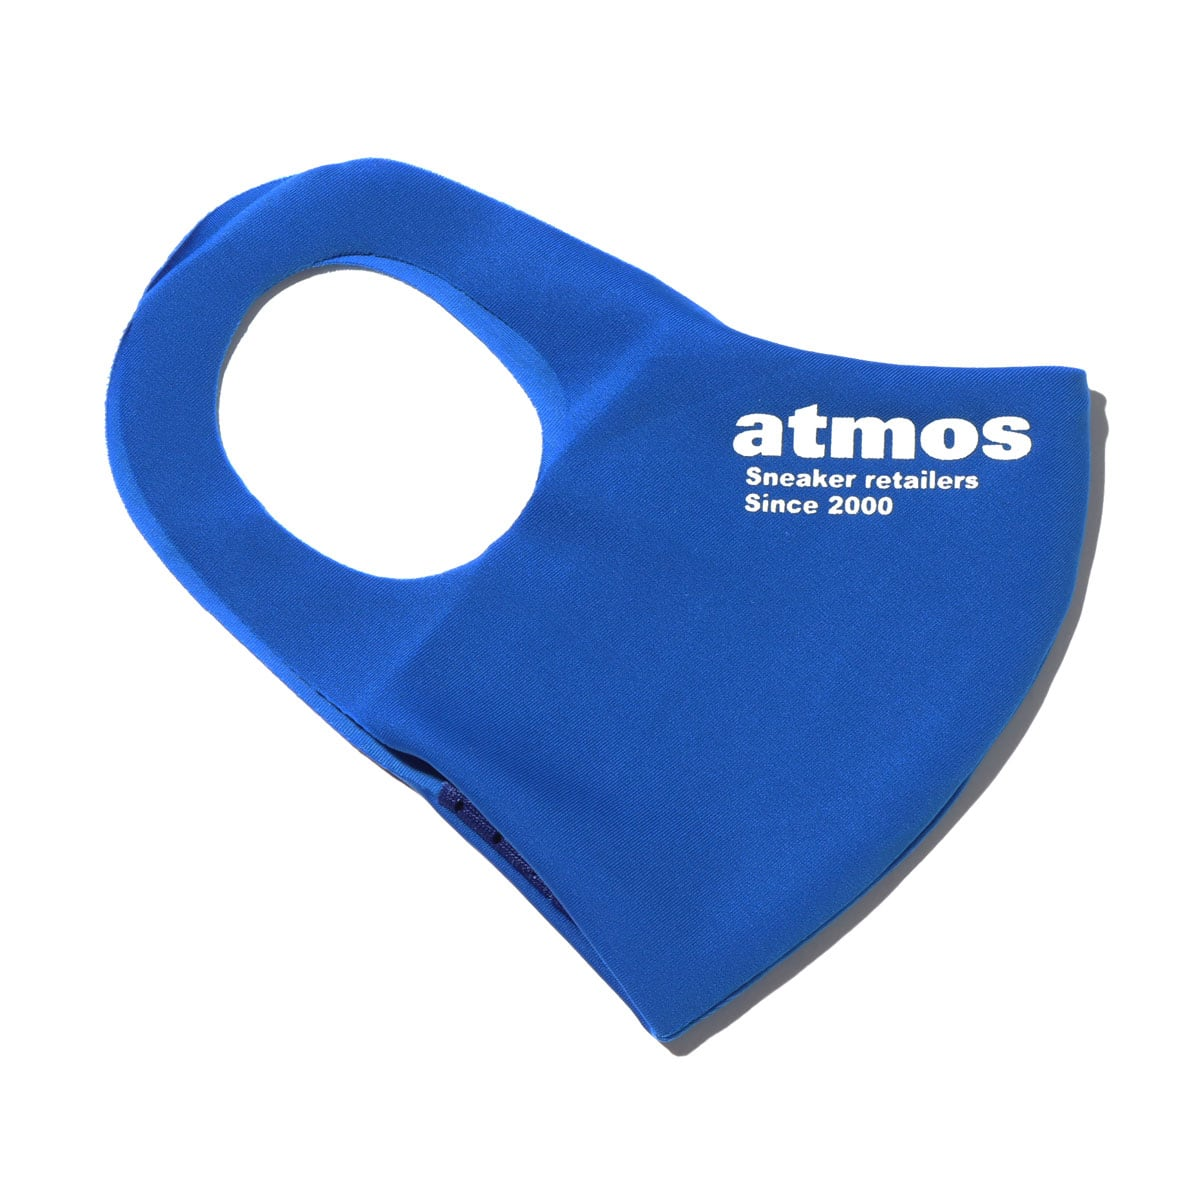 atmos LOGO MASK BLUE 20HO-I_photo_large